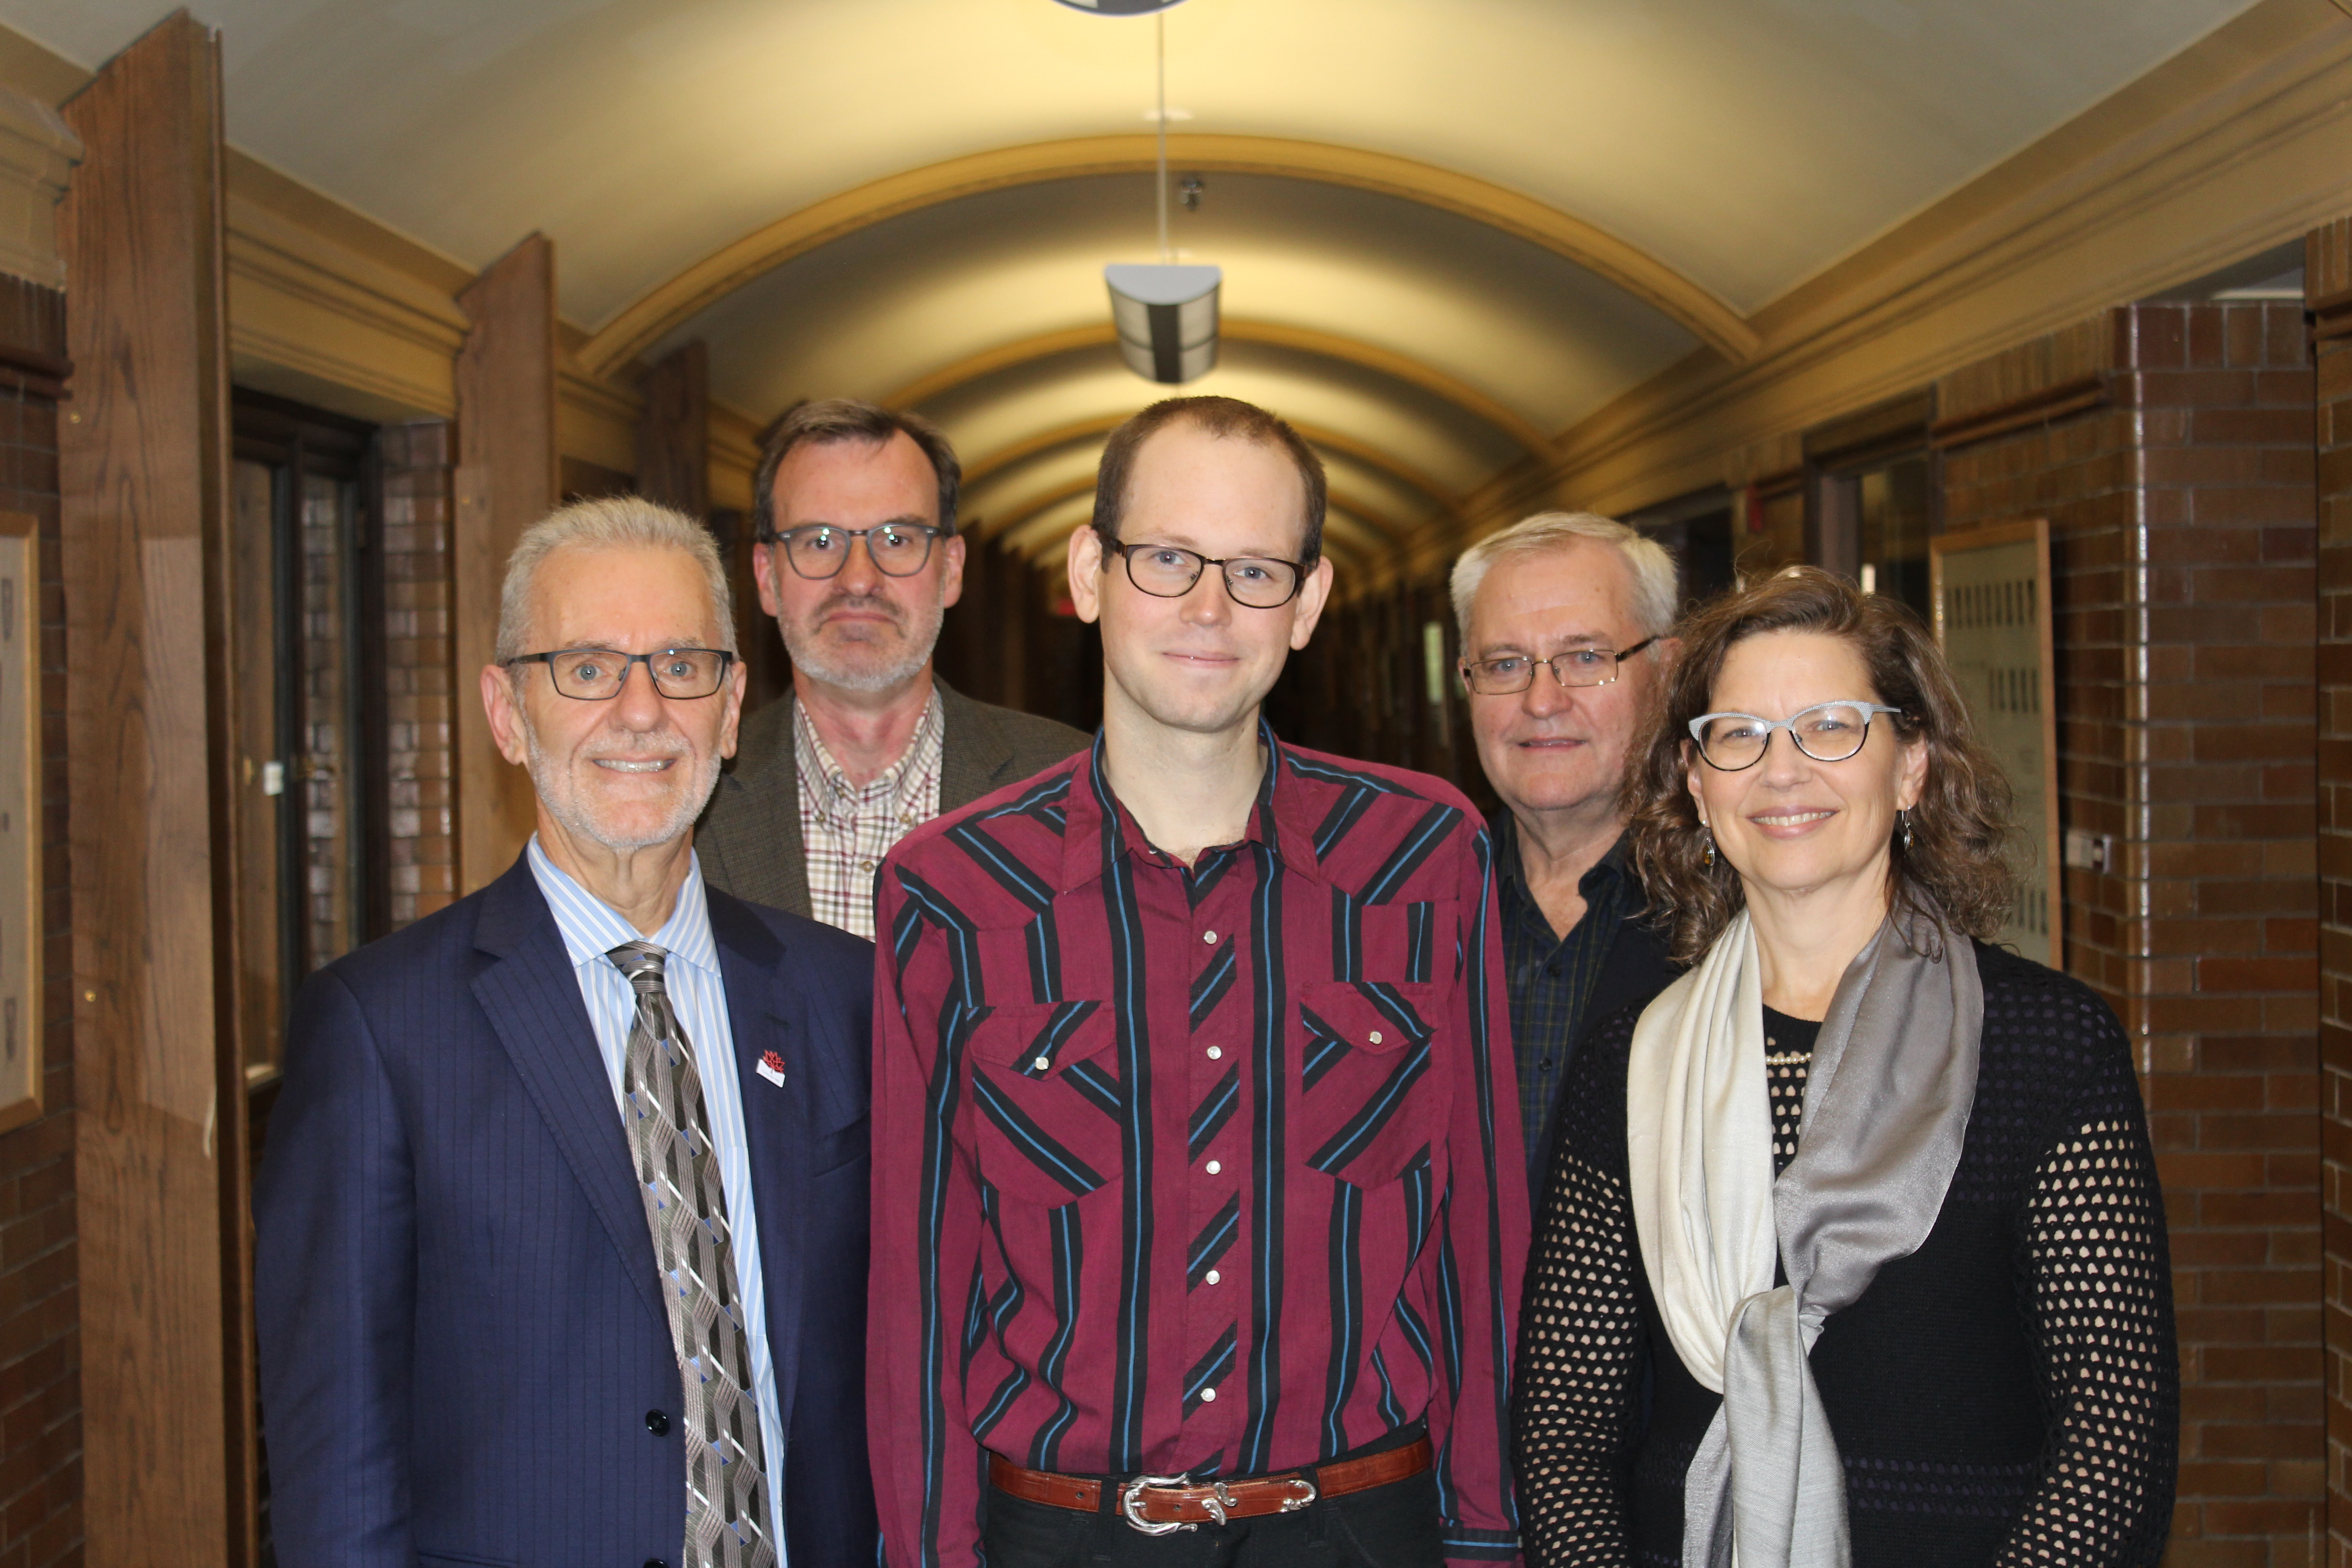 CMU donor Ted Fransen stands with Joshua Nightingale and CMU represenatives.